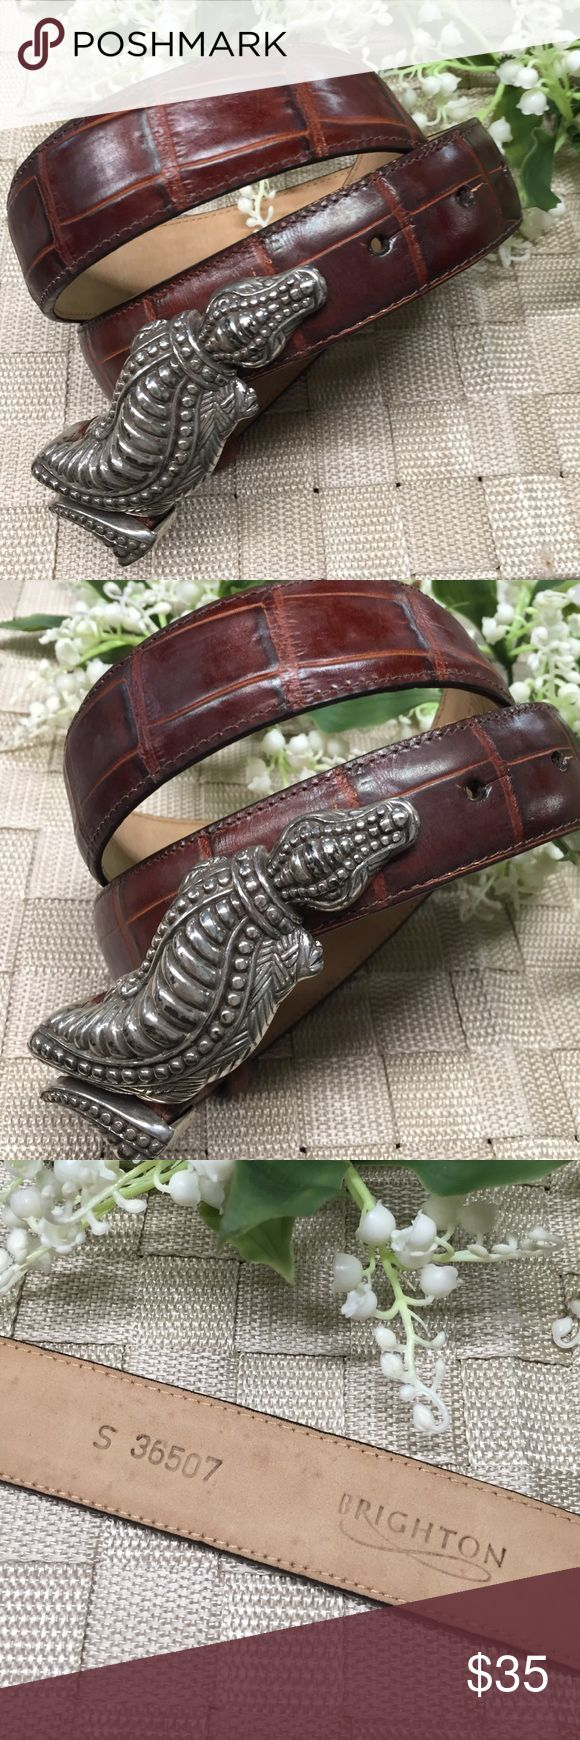 Brighton gorgeous leather alligator buckle belt. Beautiful Brighton belt. Rich textured dark brown leather. Distressed silvertone alligator buckle measuring 4 inches long. Fantastic  piece. Size S. Belt is 1& 1/4th wide by 34 inches long. Brighton Accessories Belts